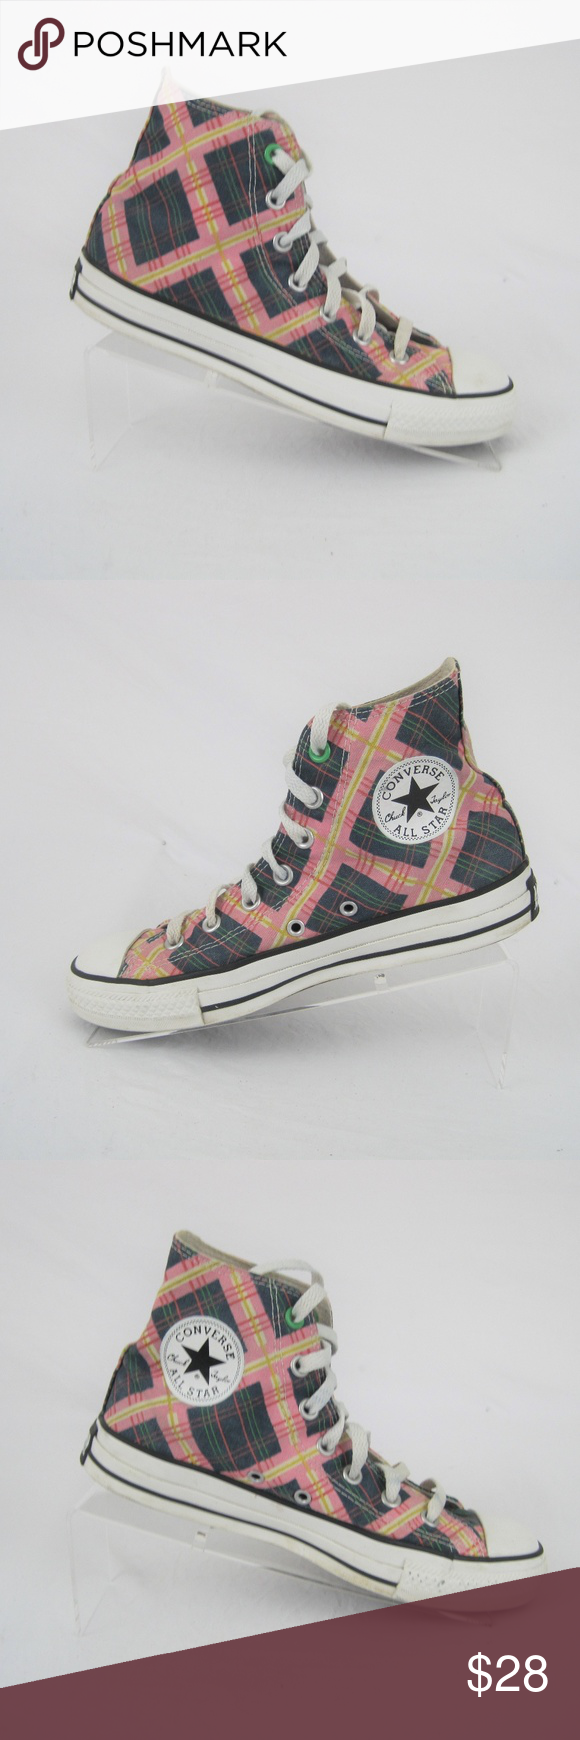 d7488c5815c2 Converse Chuck Taylor All Stars Plaid Hi Tops Converse All Stars Chuck  Taylors Hi Tops Men s Size 8 Women s Size 6 Plaid Lace Ups Excellent  Pre-Owned ...